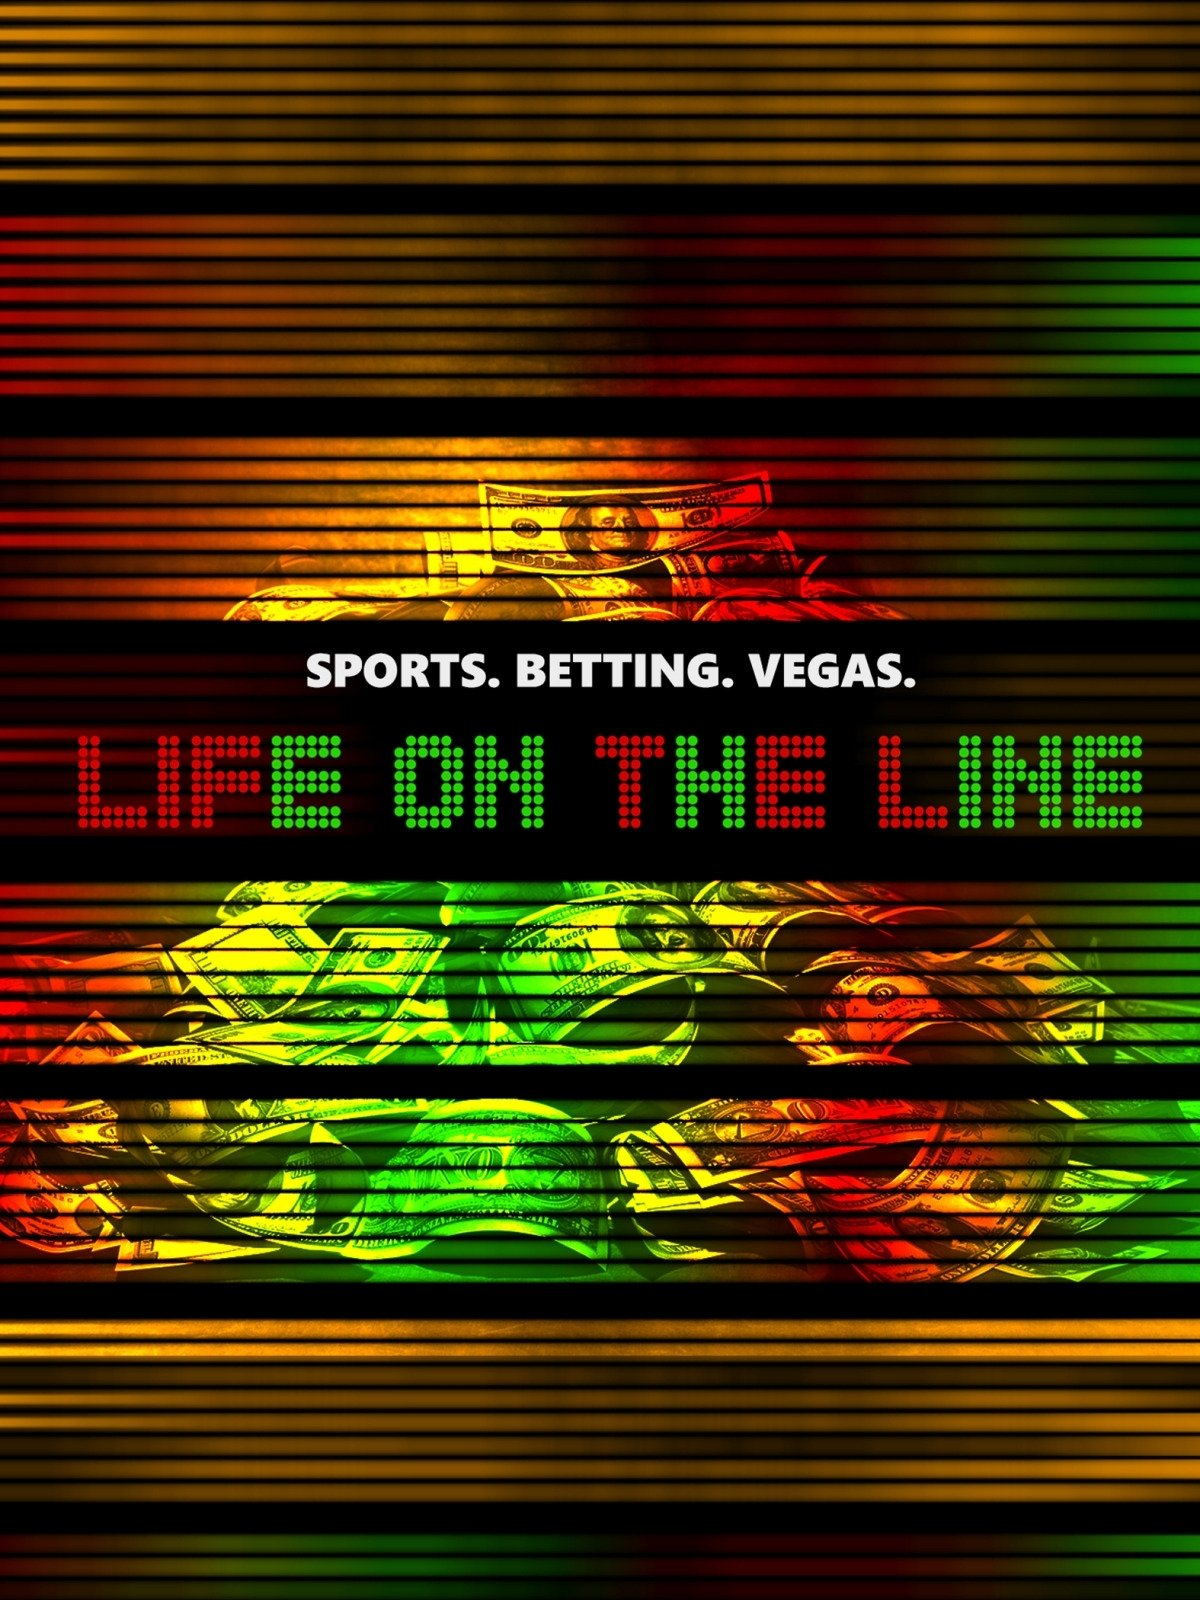 Life on the line sports betting documentary about scientology nfl betting odds week 3 2021